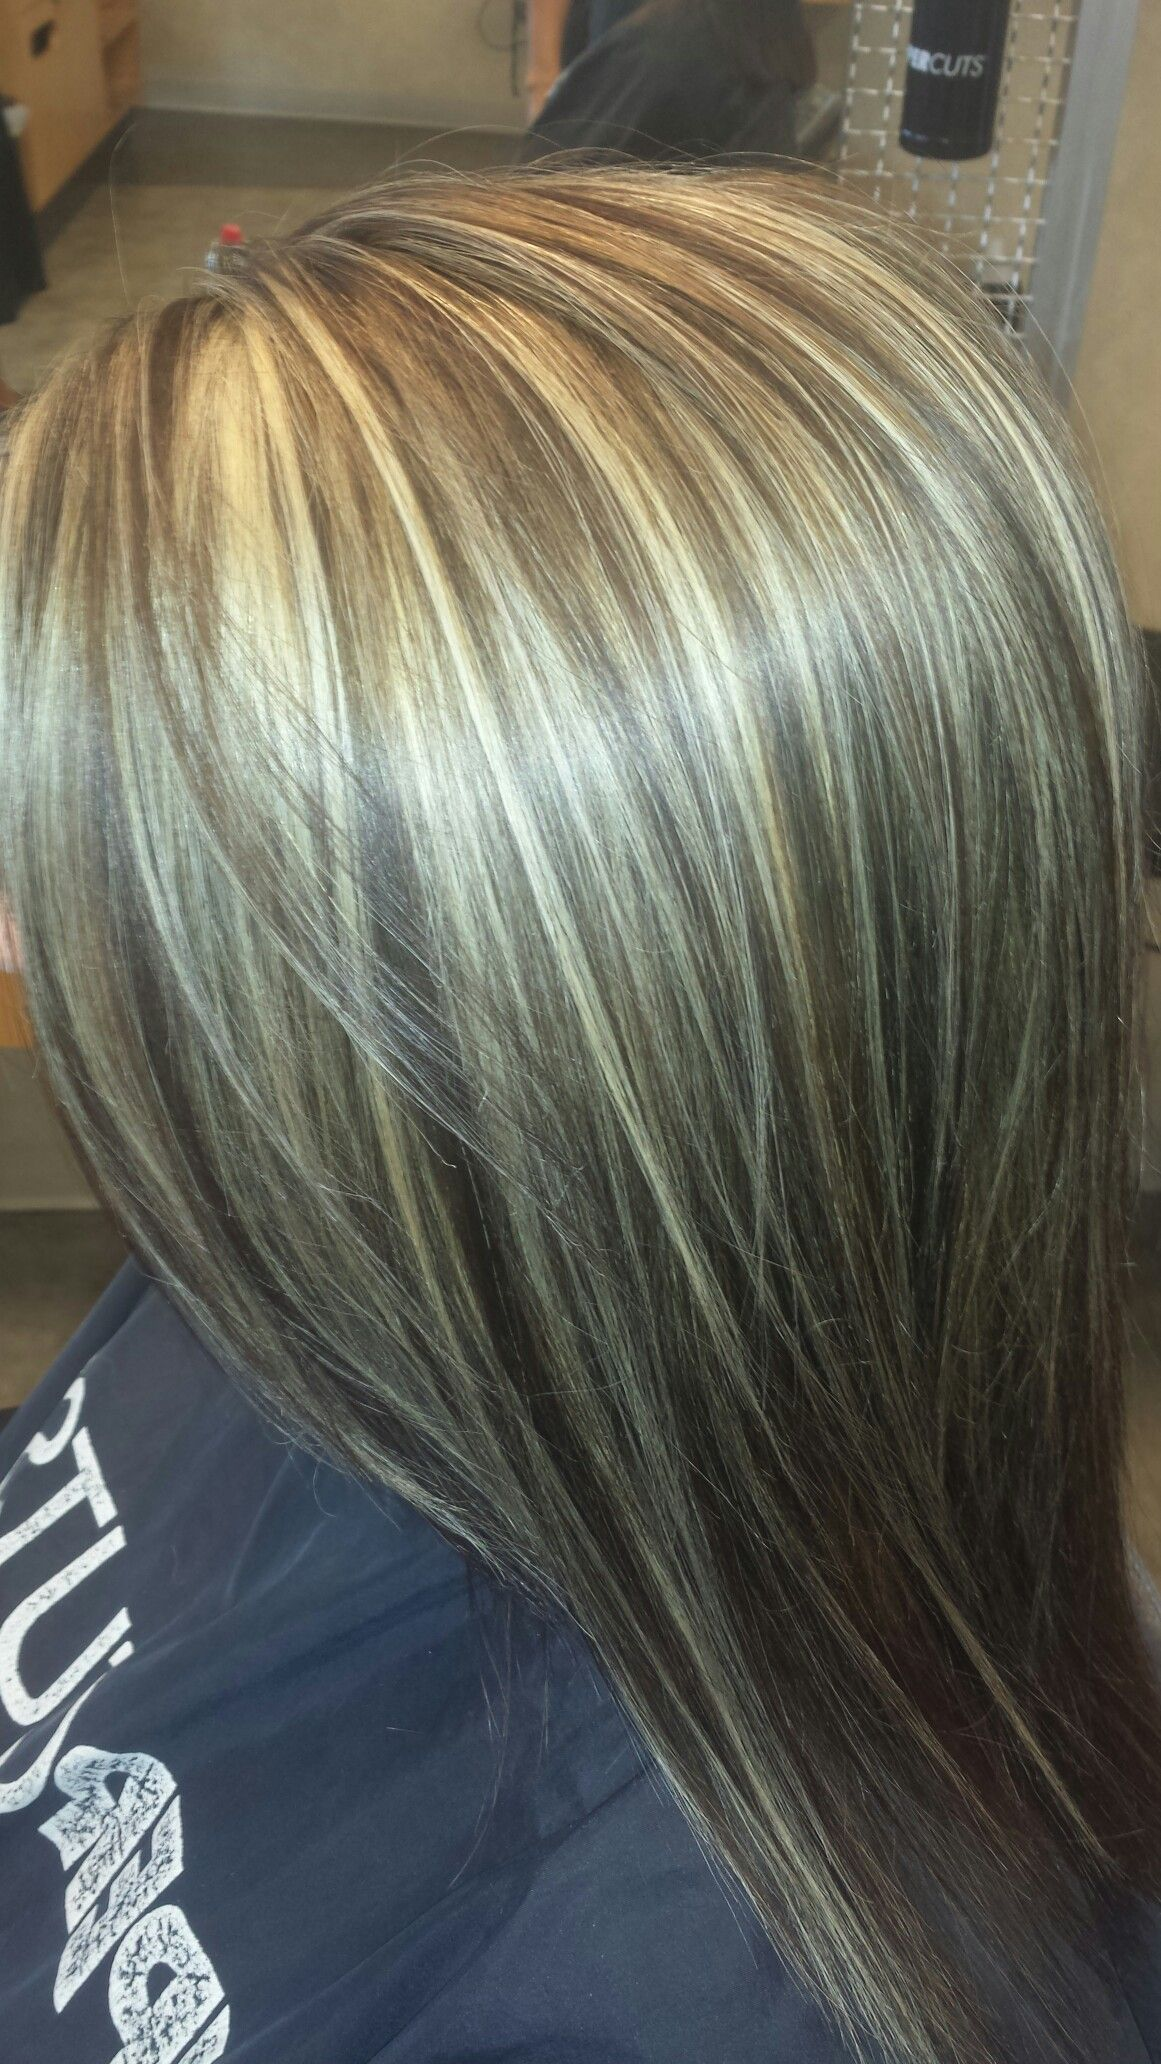 Synchro With 5n In Paul Mitchell Thin Weaves On Top Blonde Highlights With Brown Base Highlights Blonde Highlights Brown Hair With Blonde Highlights Hair